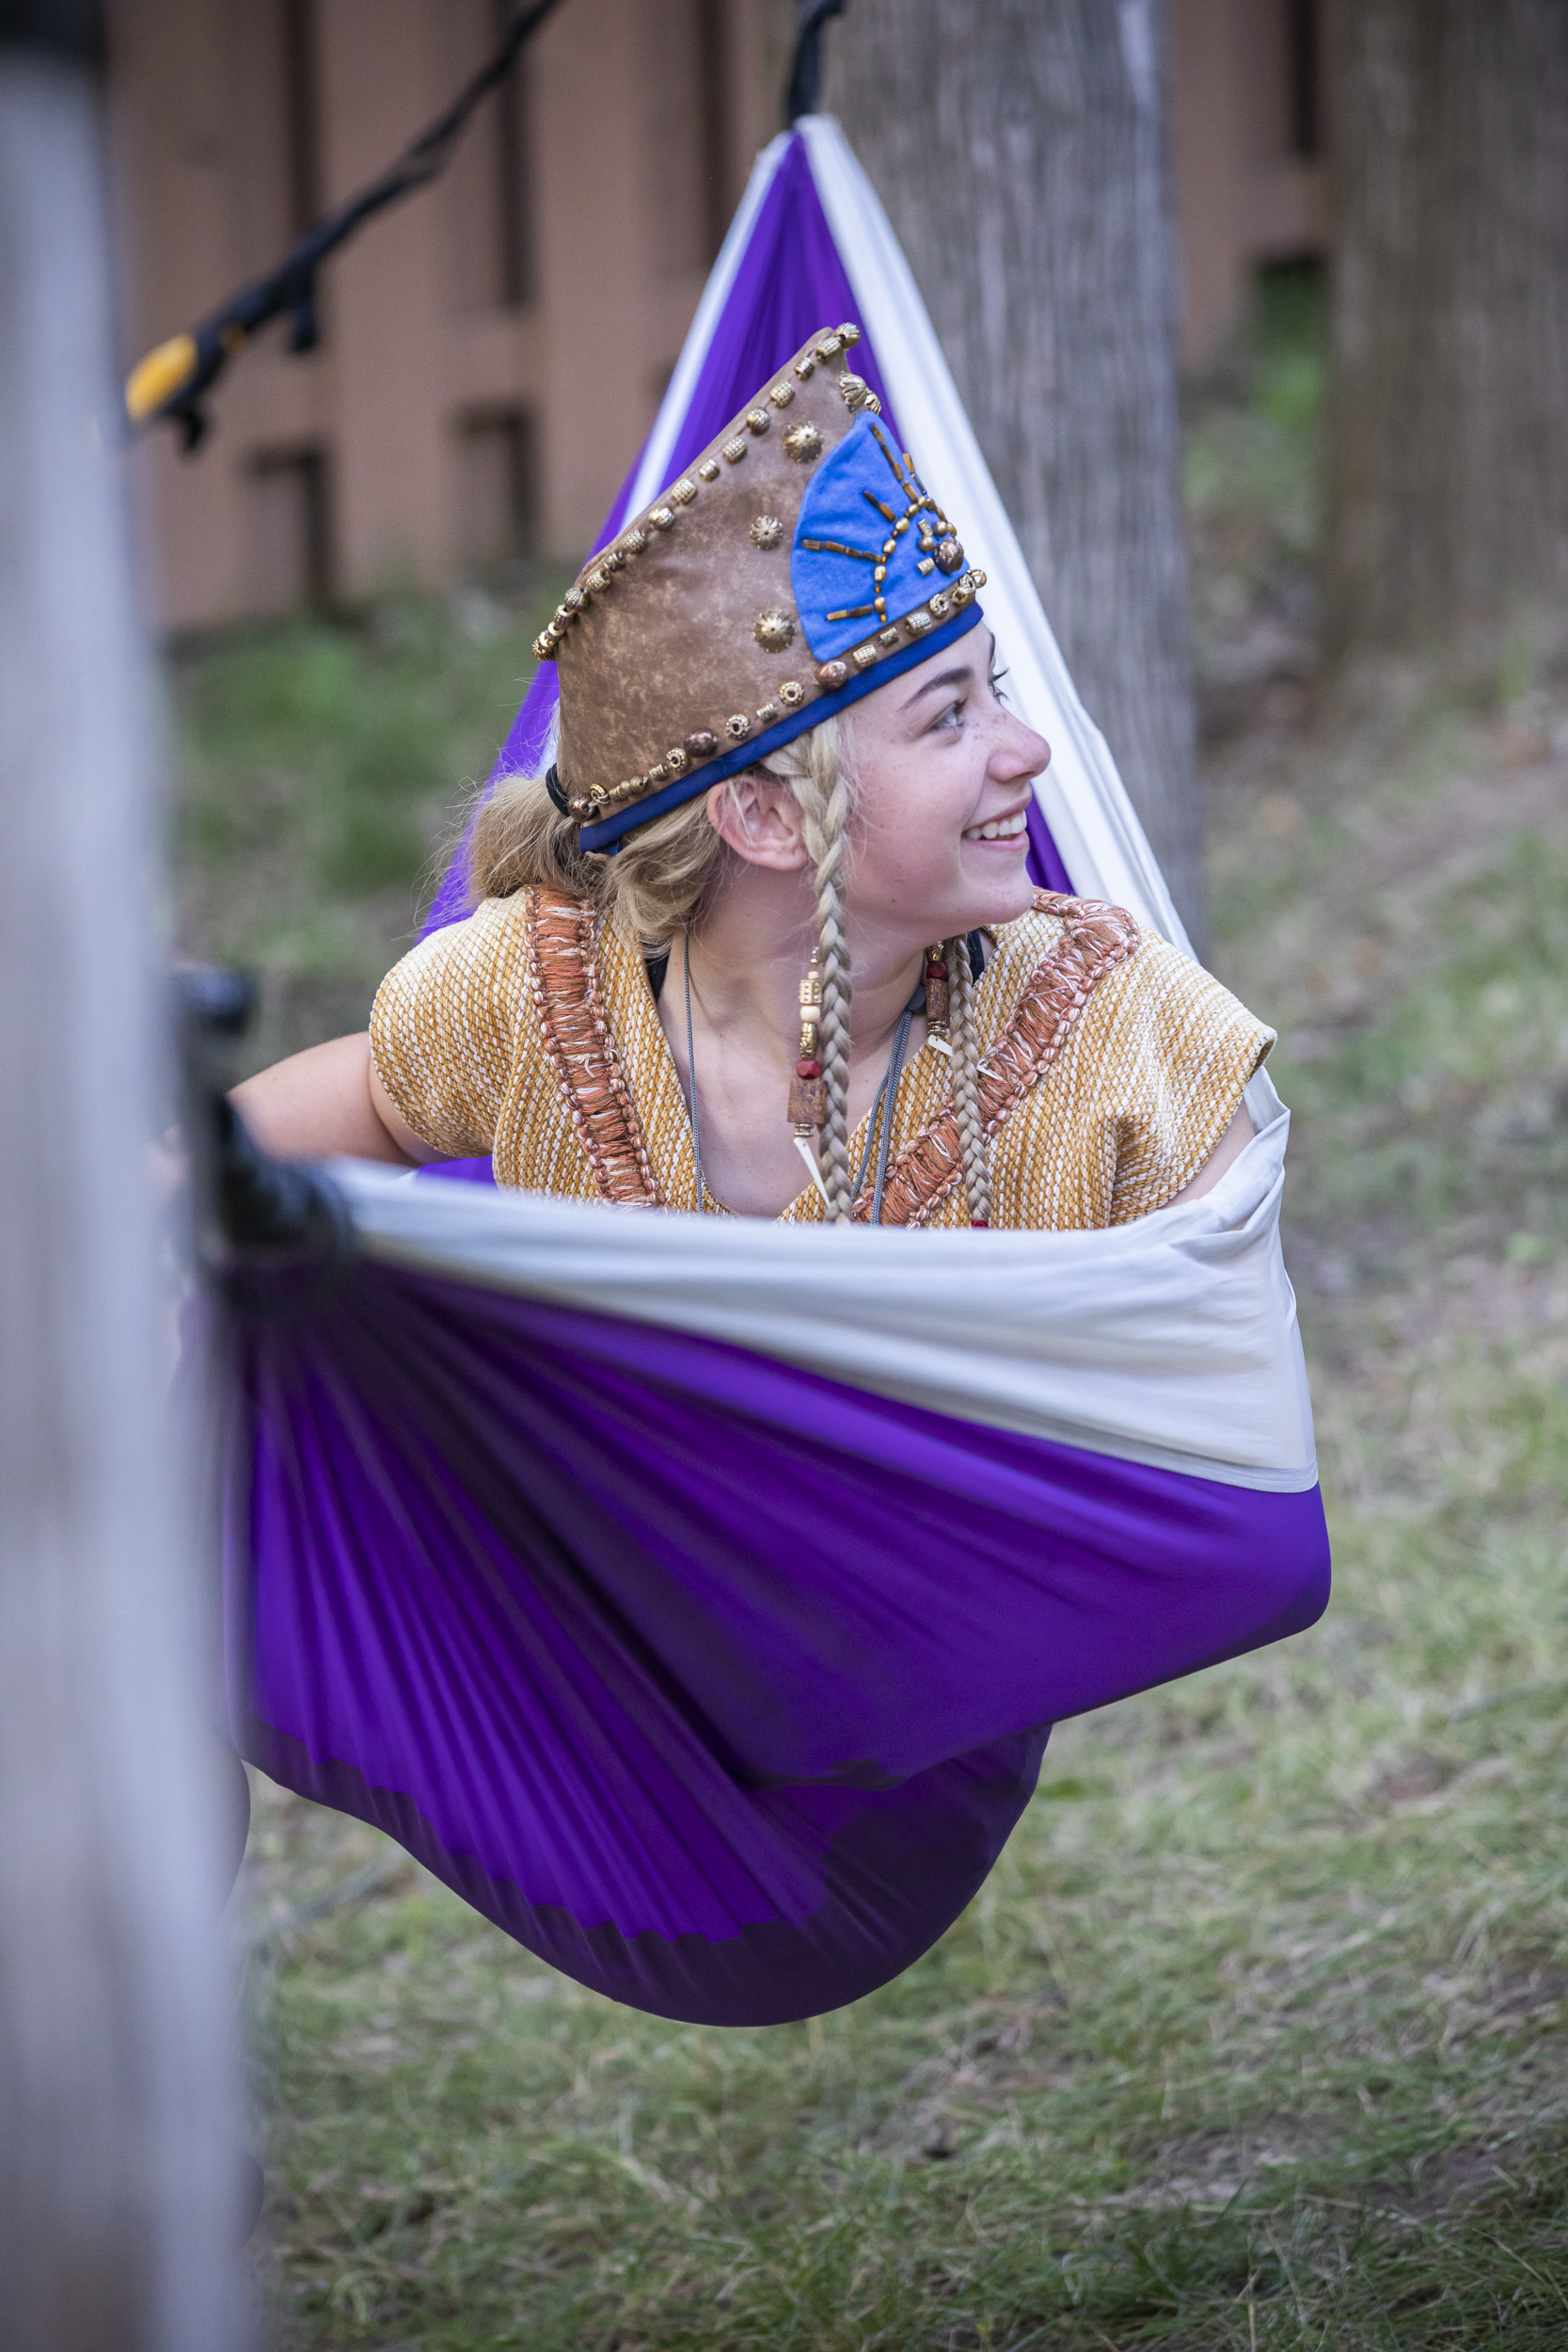 A cast member takes a break prior to a performance of the 2019 Hill Cumorah Pageant which ran July 11-13 and 16-20 on the hillside next to the Hill Cumorah Visitors' Center in Manchester, New York.